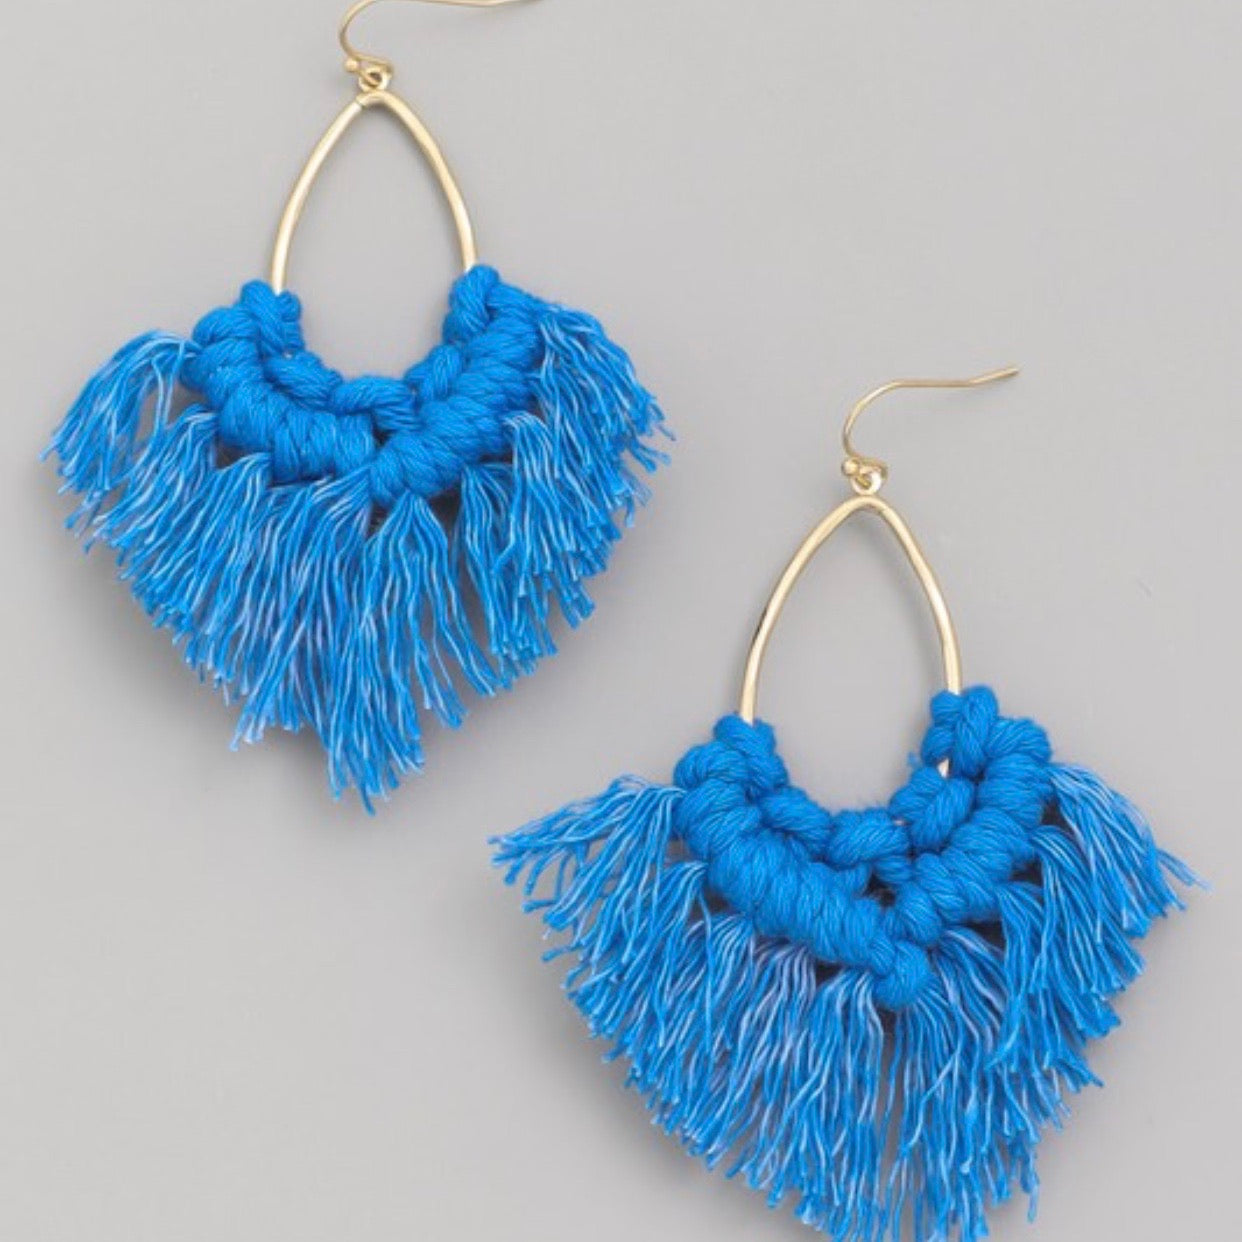 Oval Tassel Fringe Earrings